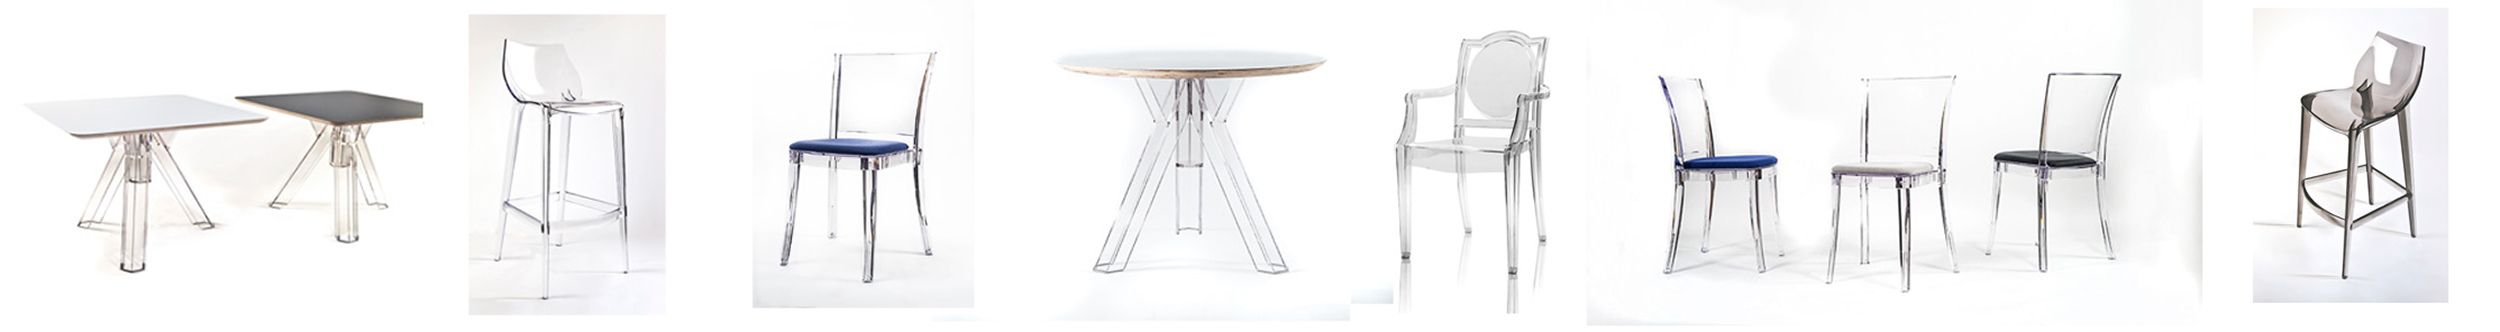 Bellelli Design - Bar Tables